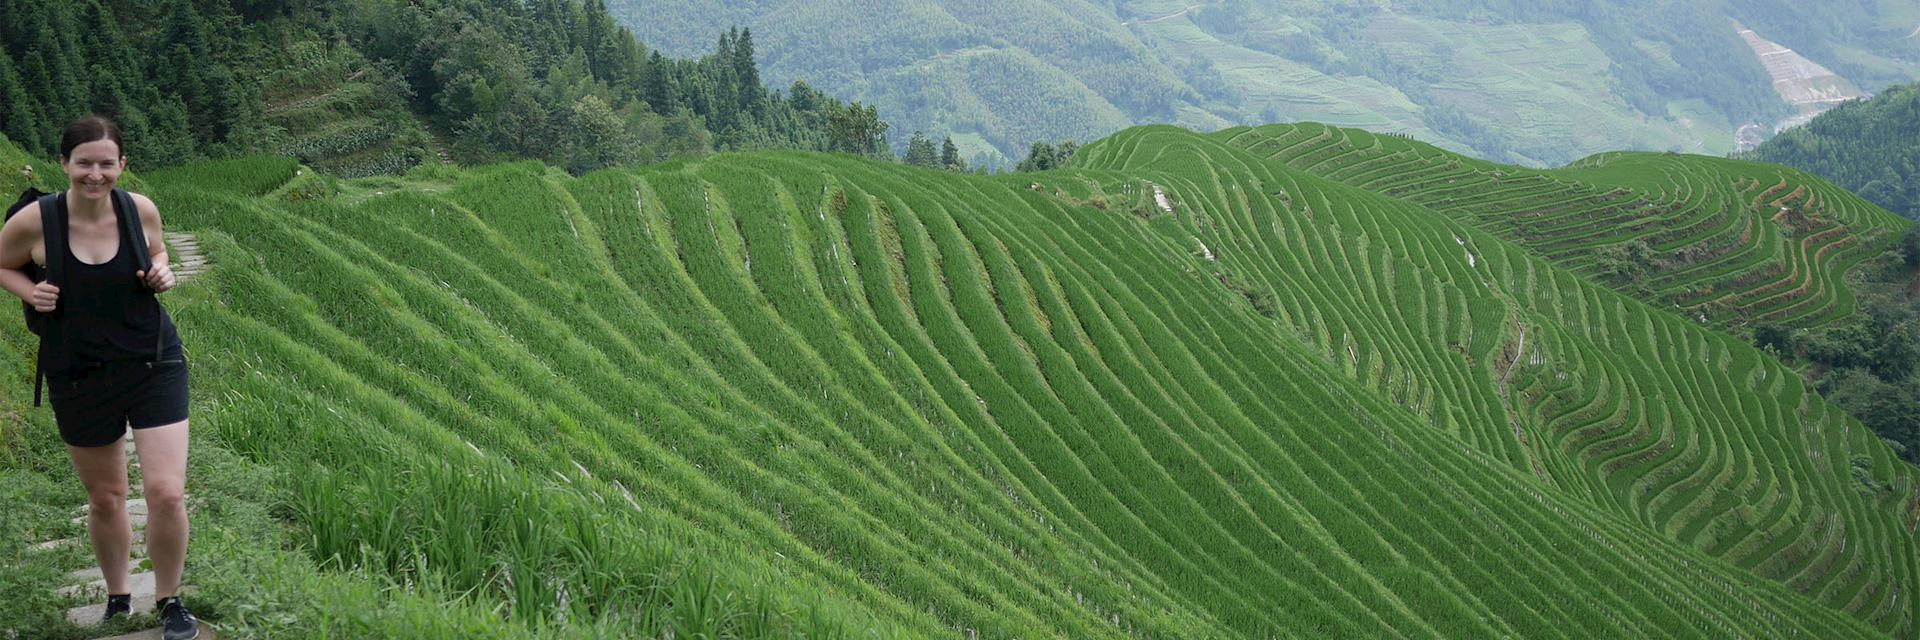 Hiking through the Longji Rice Terraces